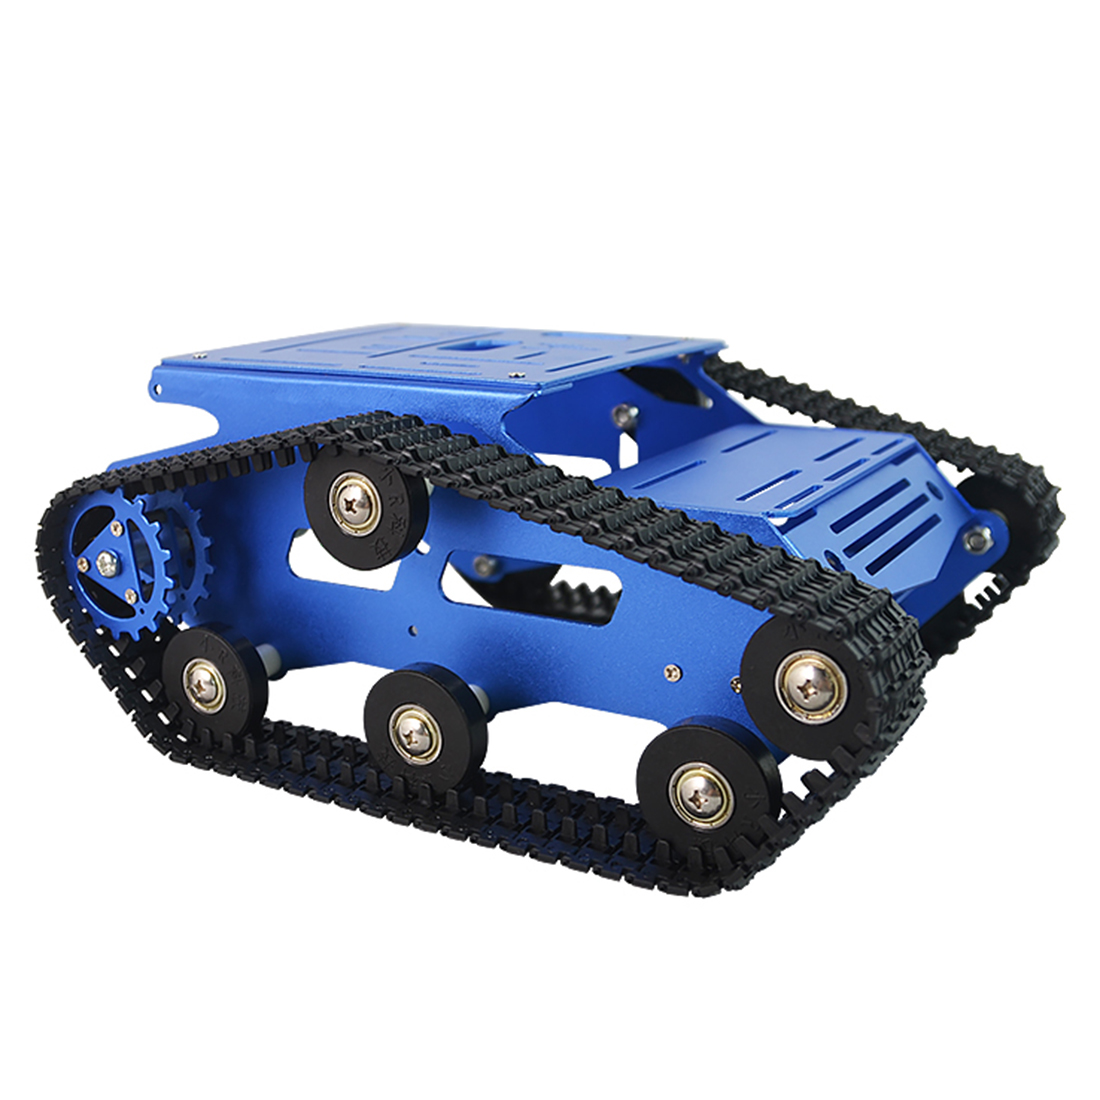 DIY Intelligent Programmable Robot Tank Crawler Chassis Car Frame Kit High Quality Gift For Adults Children - Blue